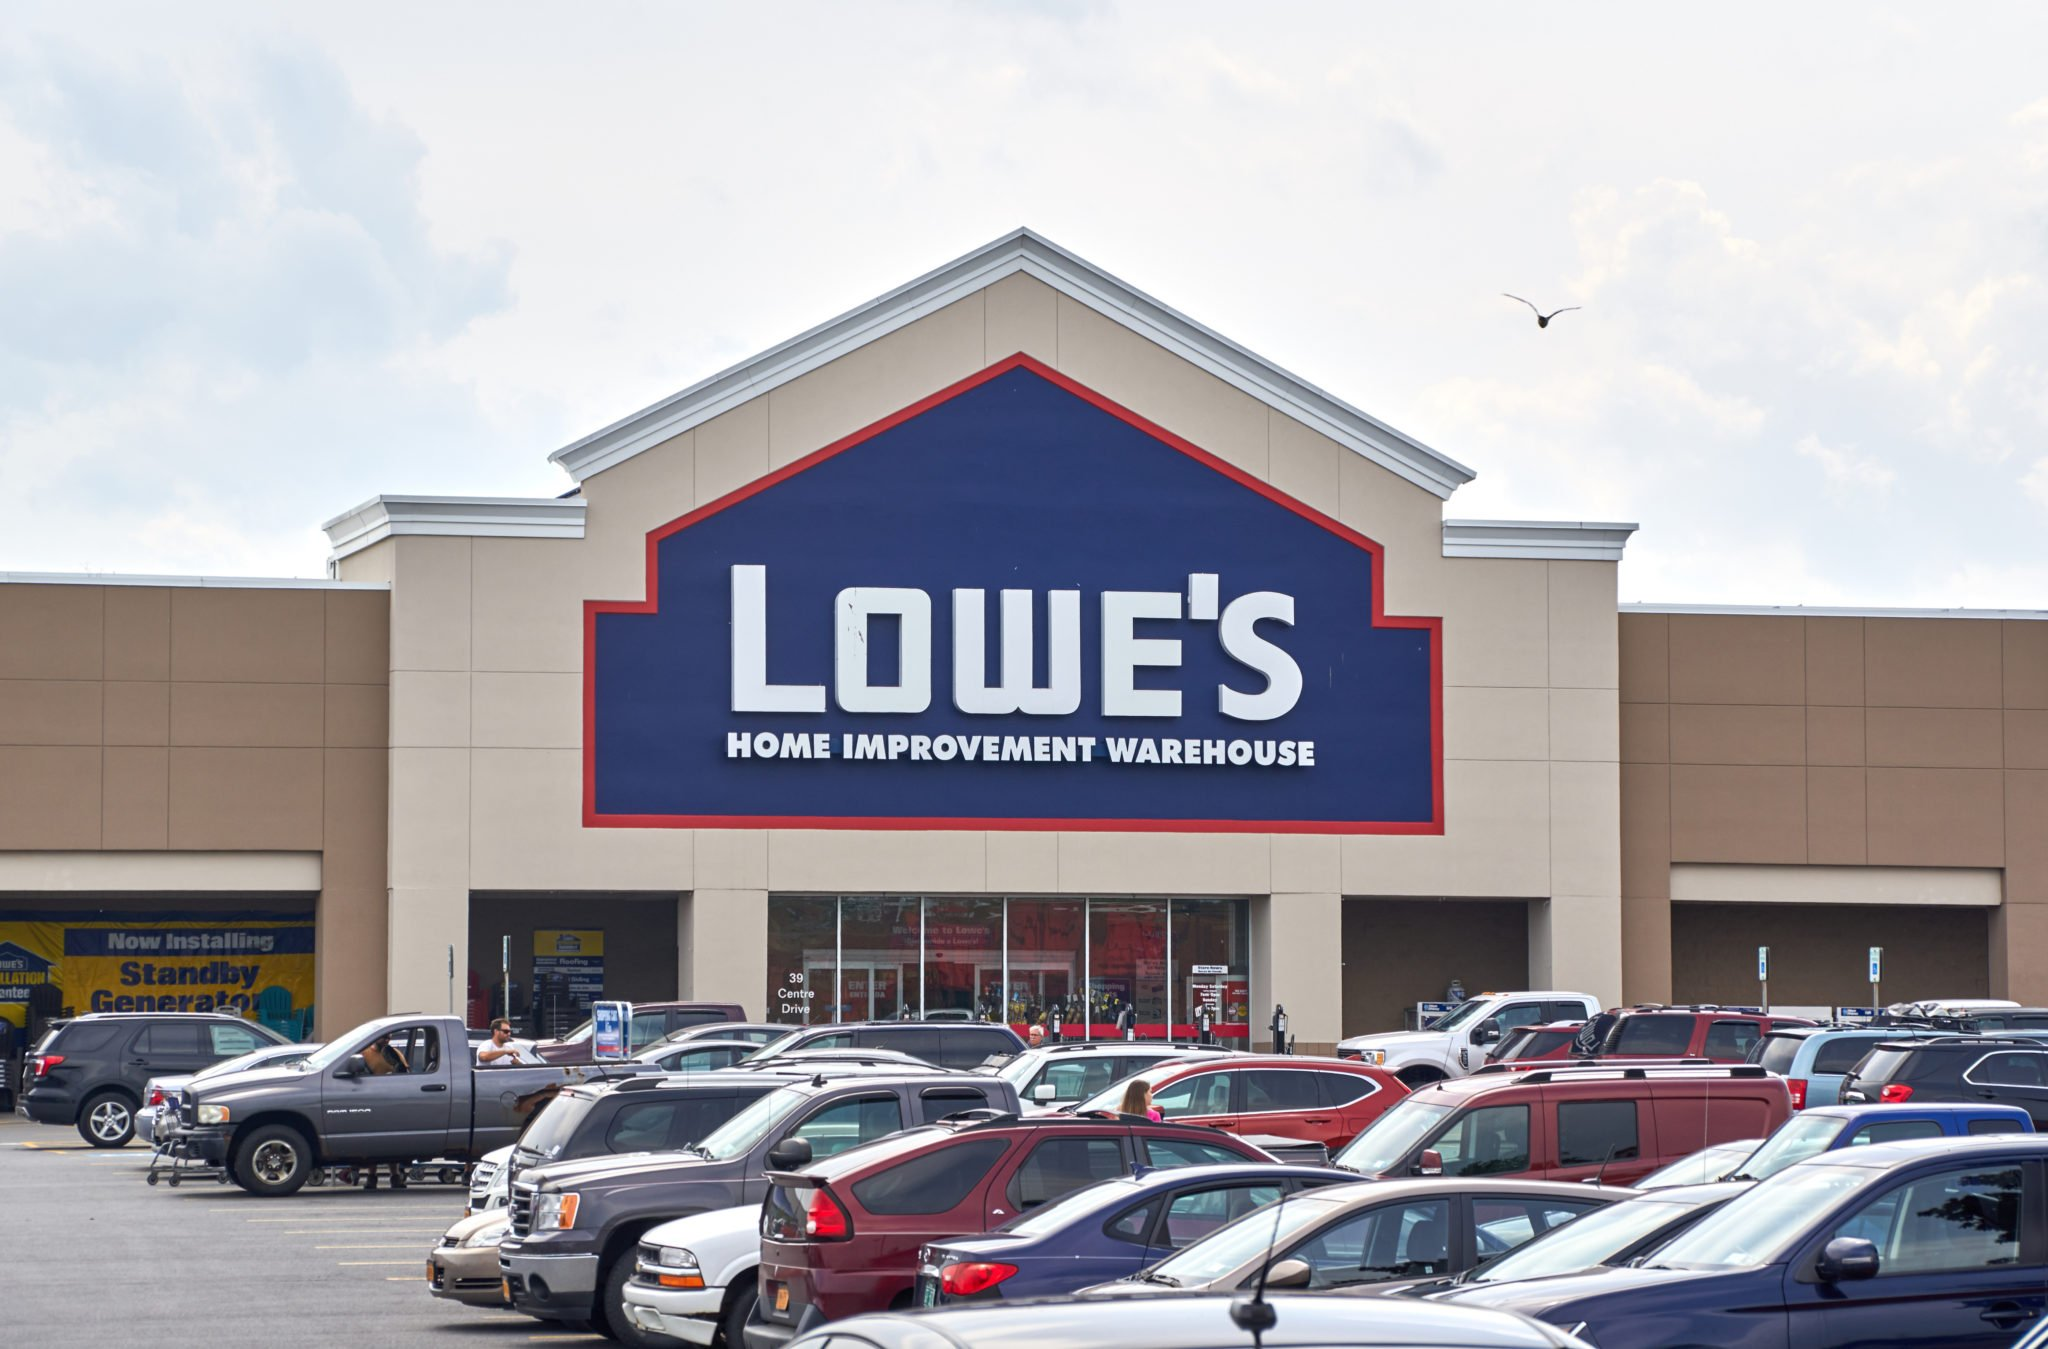 Lowe's is your home improvement resource offering how-to videos, DIY projects, landscaping and lawn care ideas, and more helpful videos full of inspiration a Views: K.